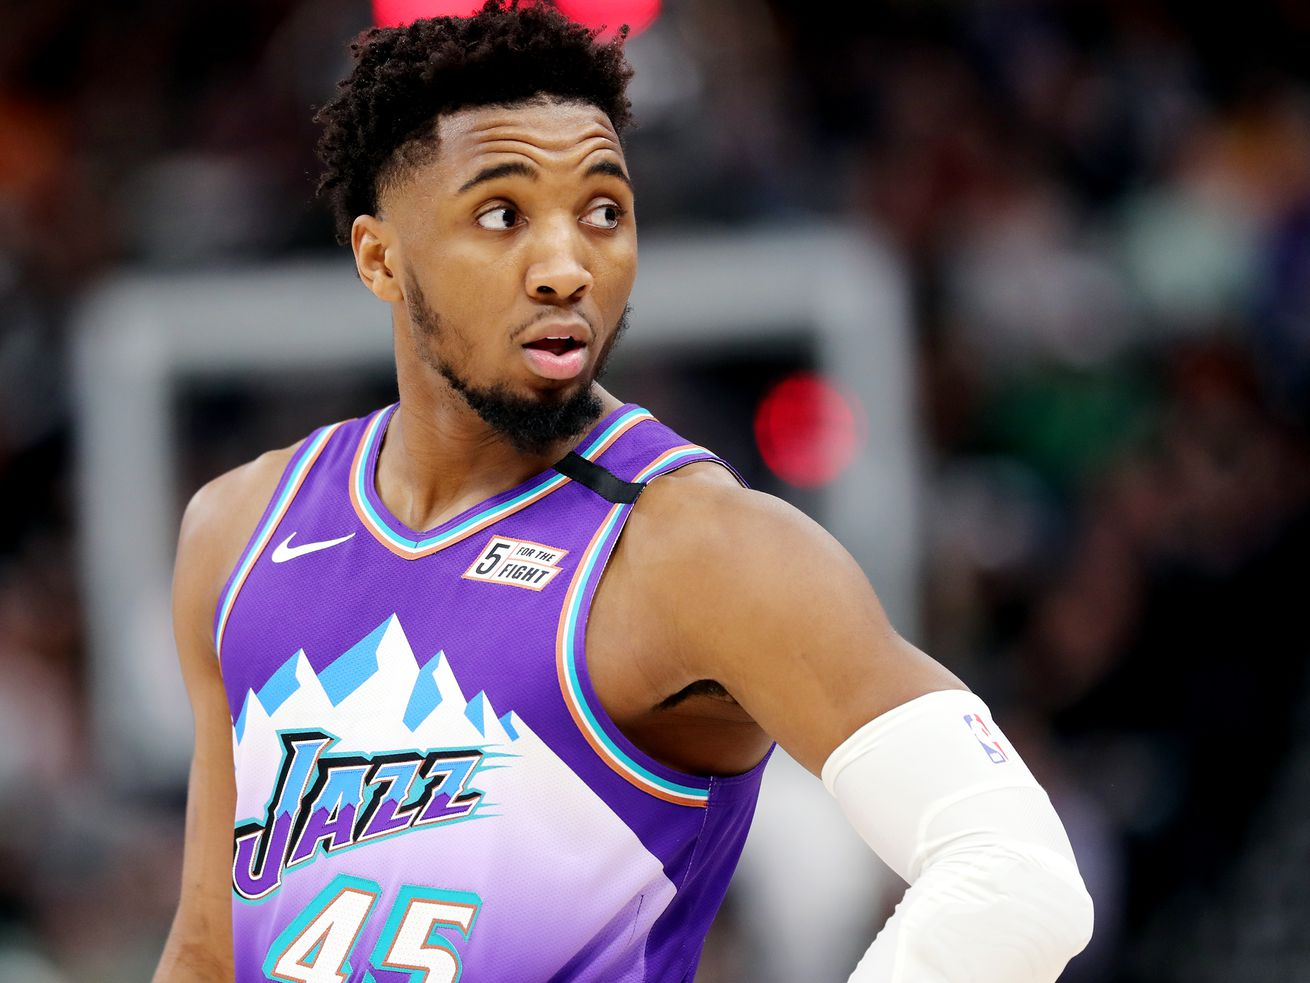 Donovan Mitchell wants his legacy to be about more than basketball